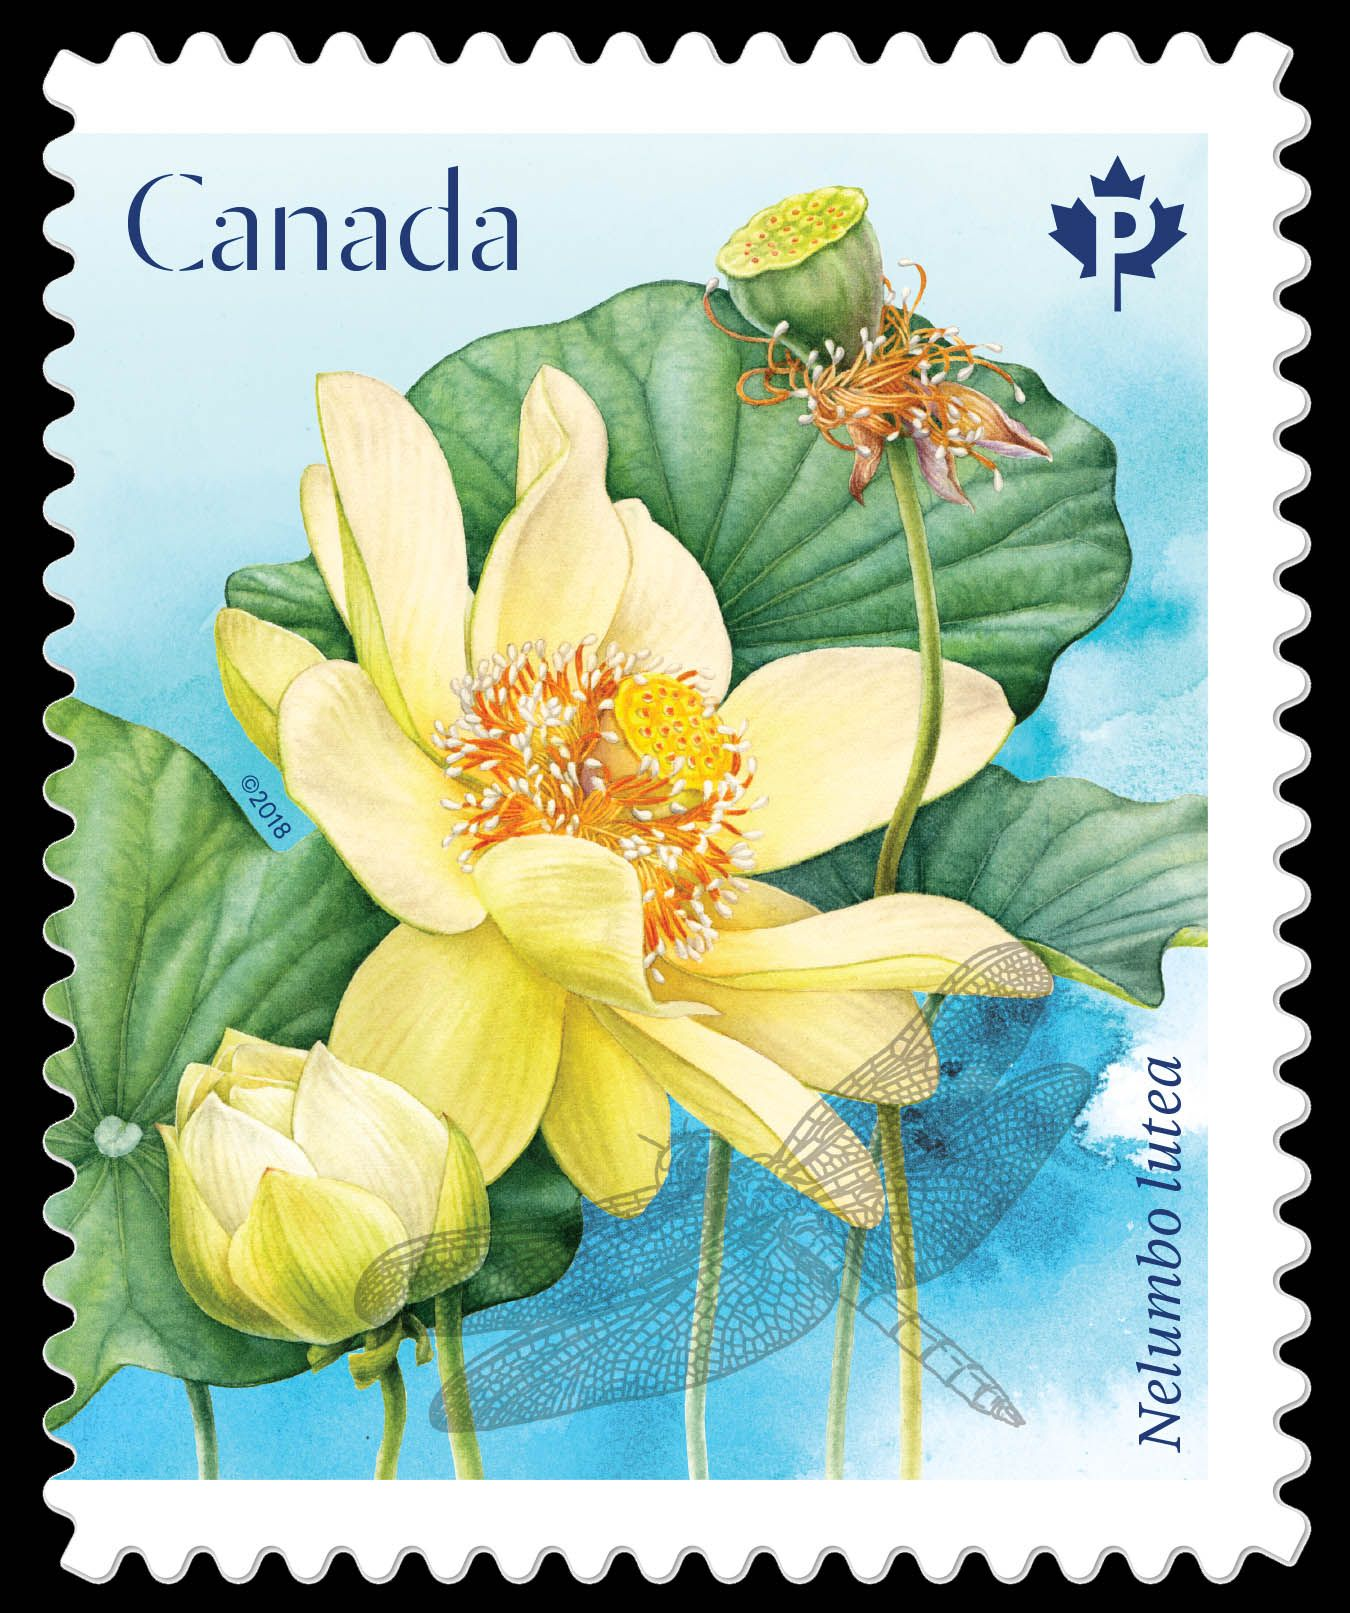 Canada 2018 Lotusblume Flower stamp, Stamp, Postage stamps